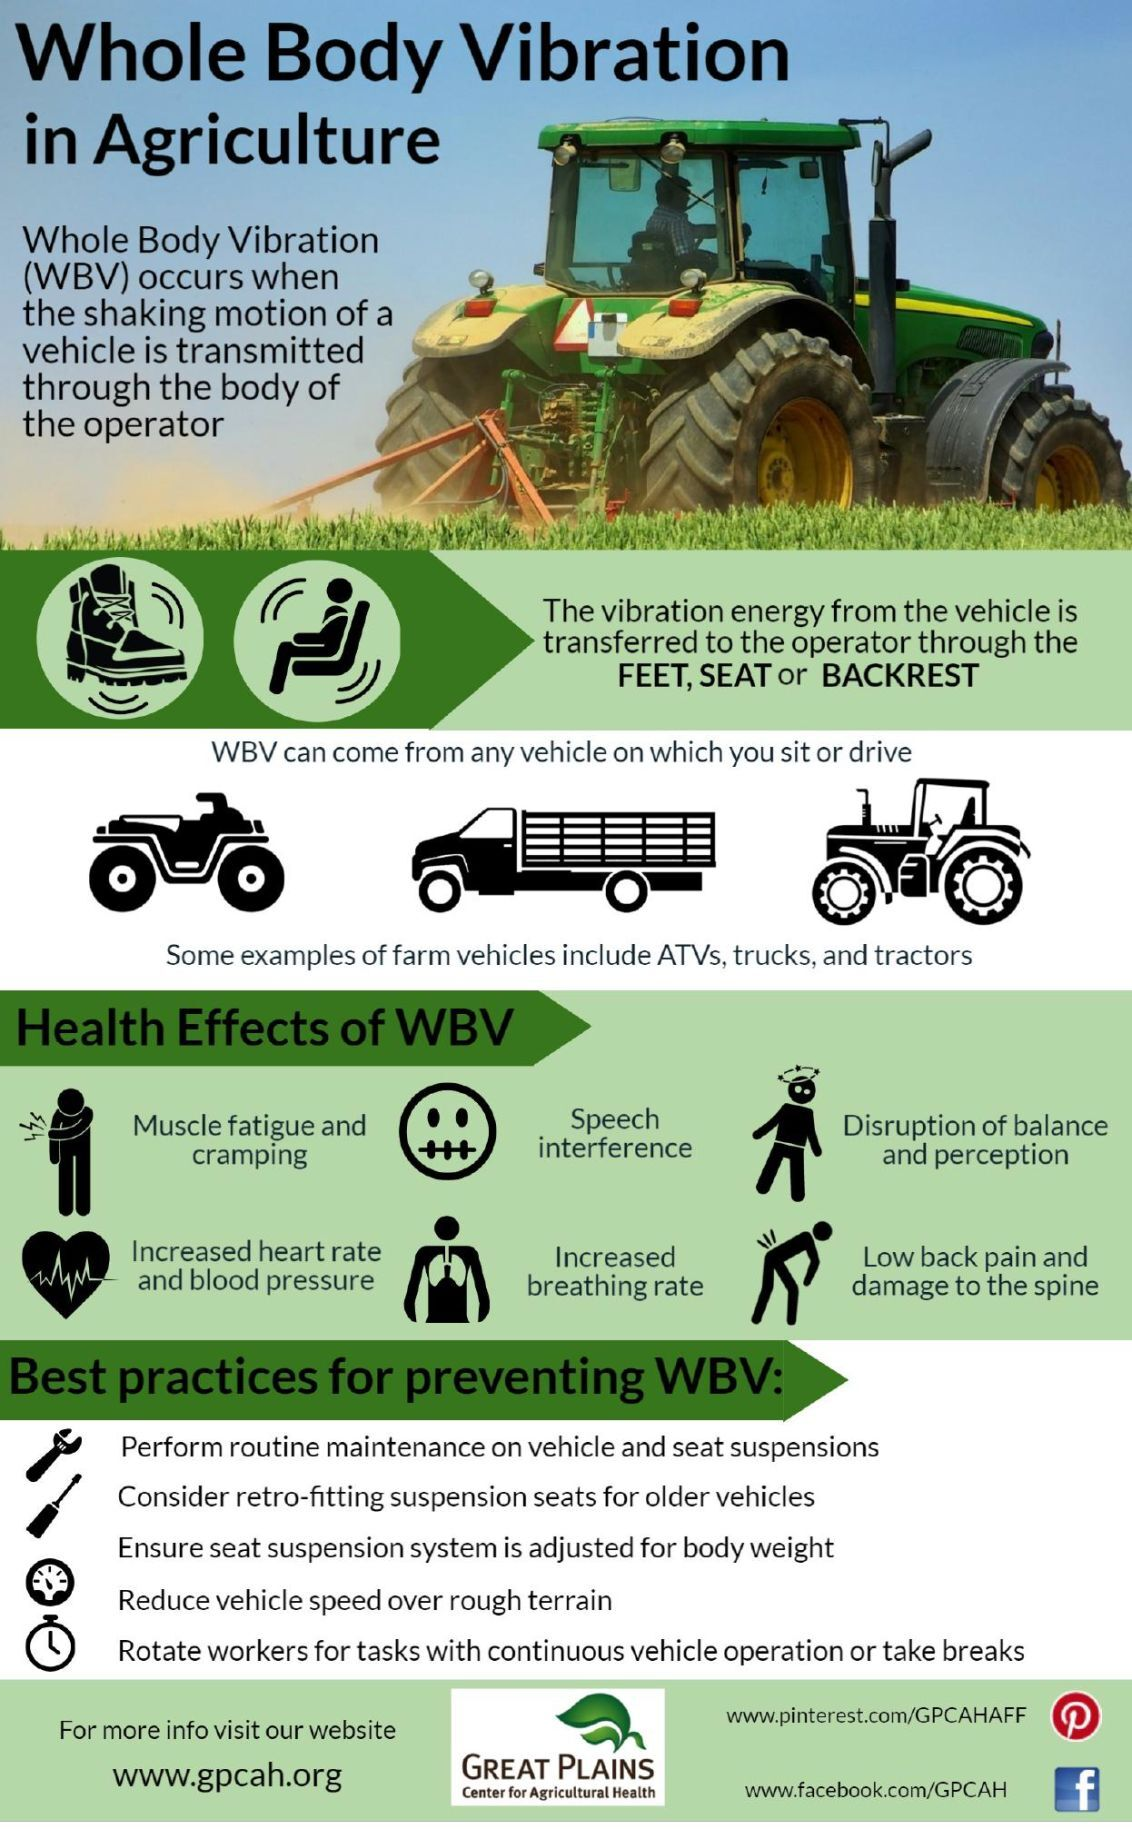 Whole Body Vibration in Agriculture